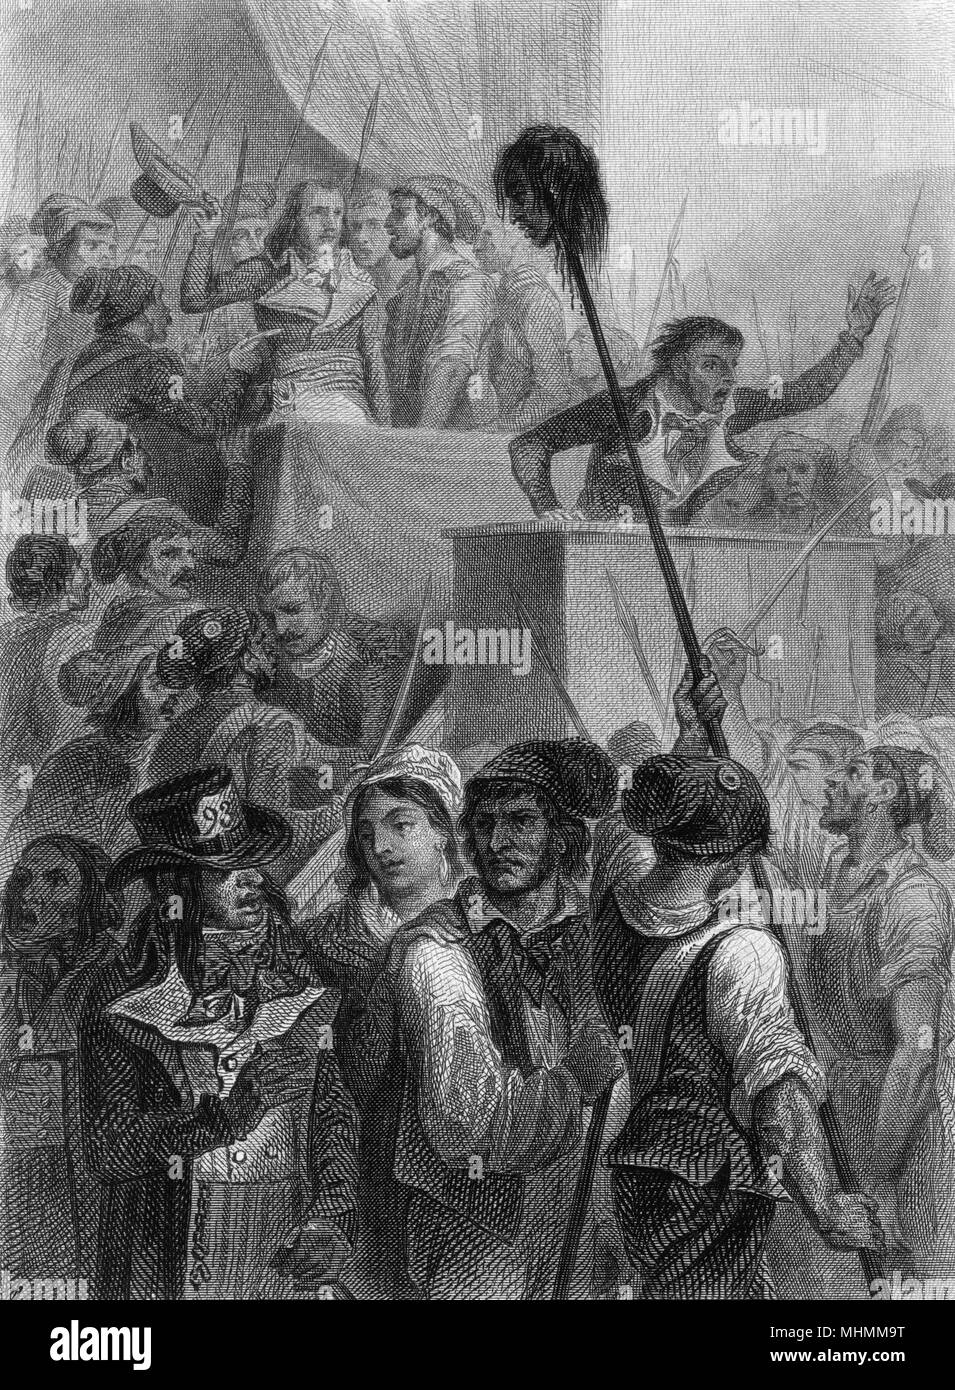 Jean Feraud (or Ferraud), member of the Convention and opponent of Robespierre, is assassinated at the entrance to the Convention, where his head is saluted.     Date: 20 May 1795 - Stock Image